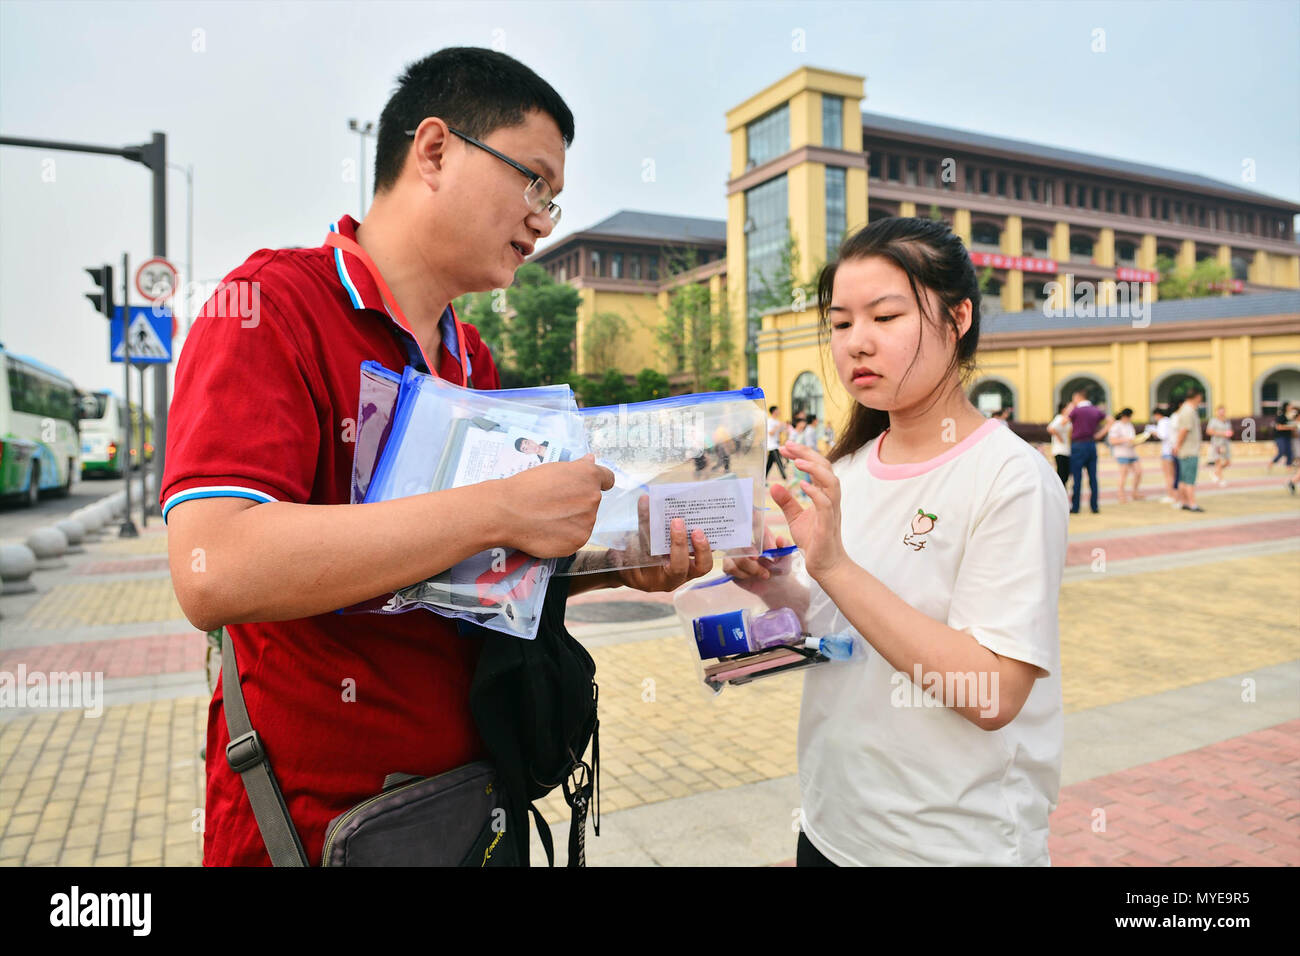 Chengdu, China's Sichuan Province. 7th June, 2018. A teacher distributes ID cards and stationery to examinees at an exam venue in Chengdu, capital of southwest China's Sichuan Province, June 7, 2018. About 9.75 million students have registered for the national college entrance examination, which takes place from June 7 to 8. Credit: Jiang Hongjing/Xinhua/Alamy Live News - Stock Image